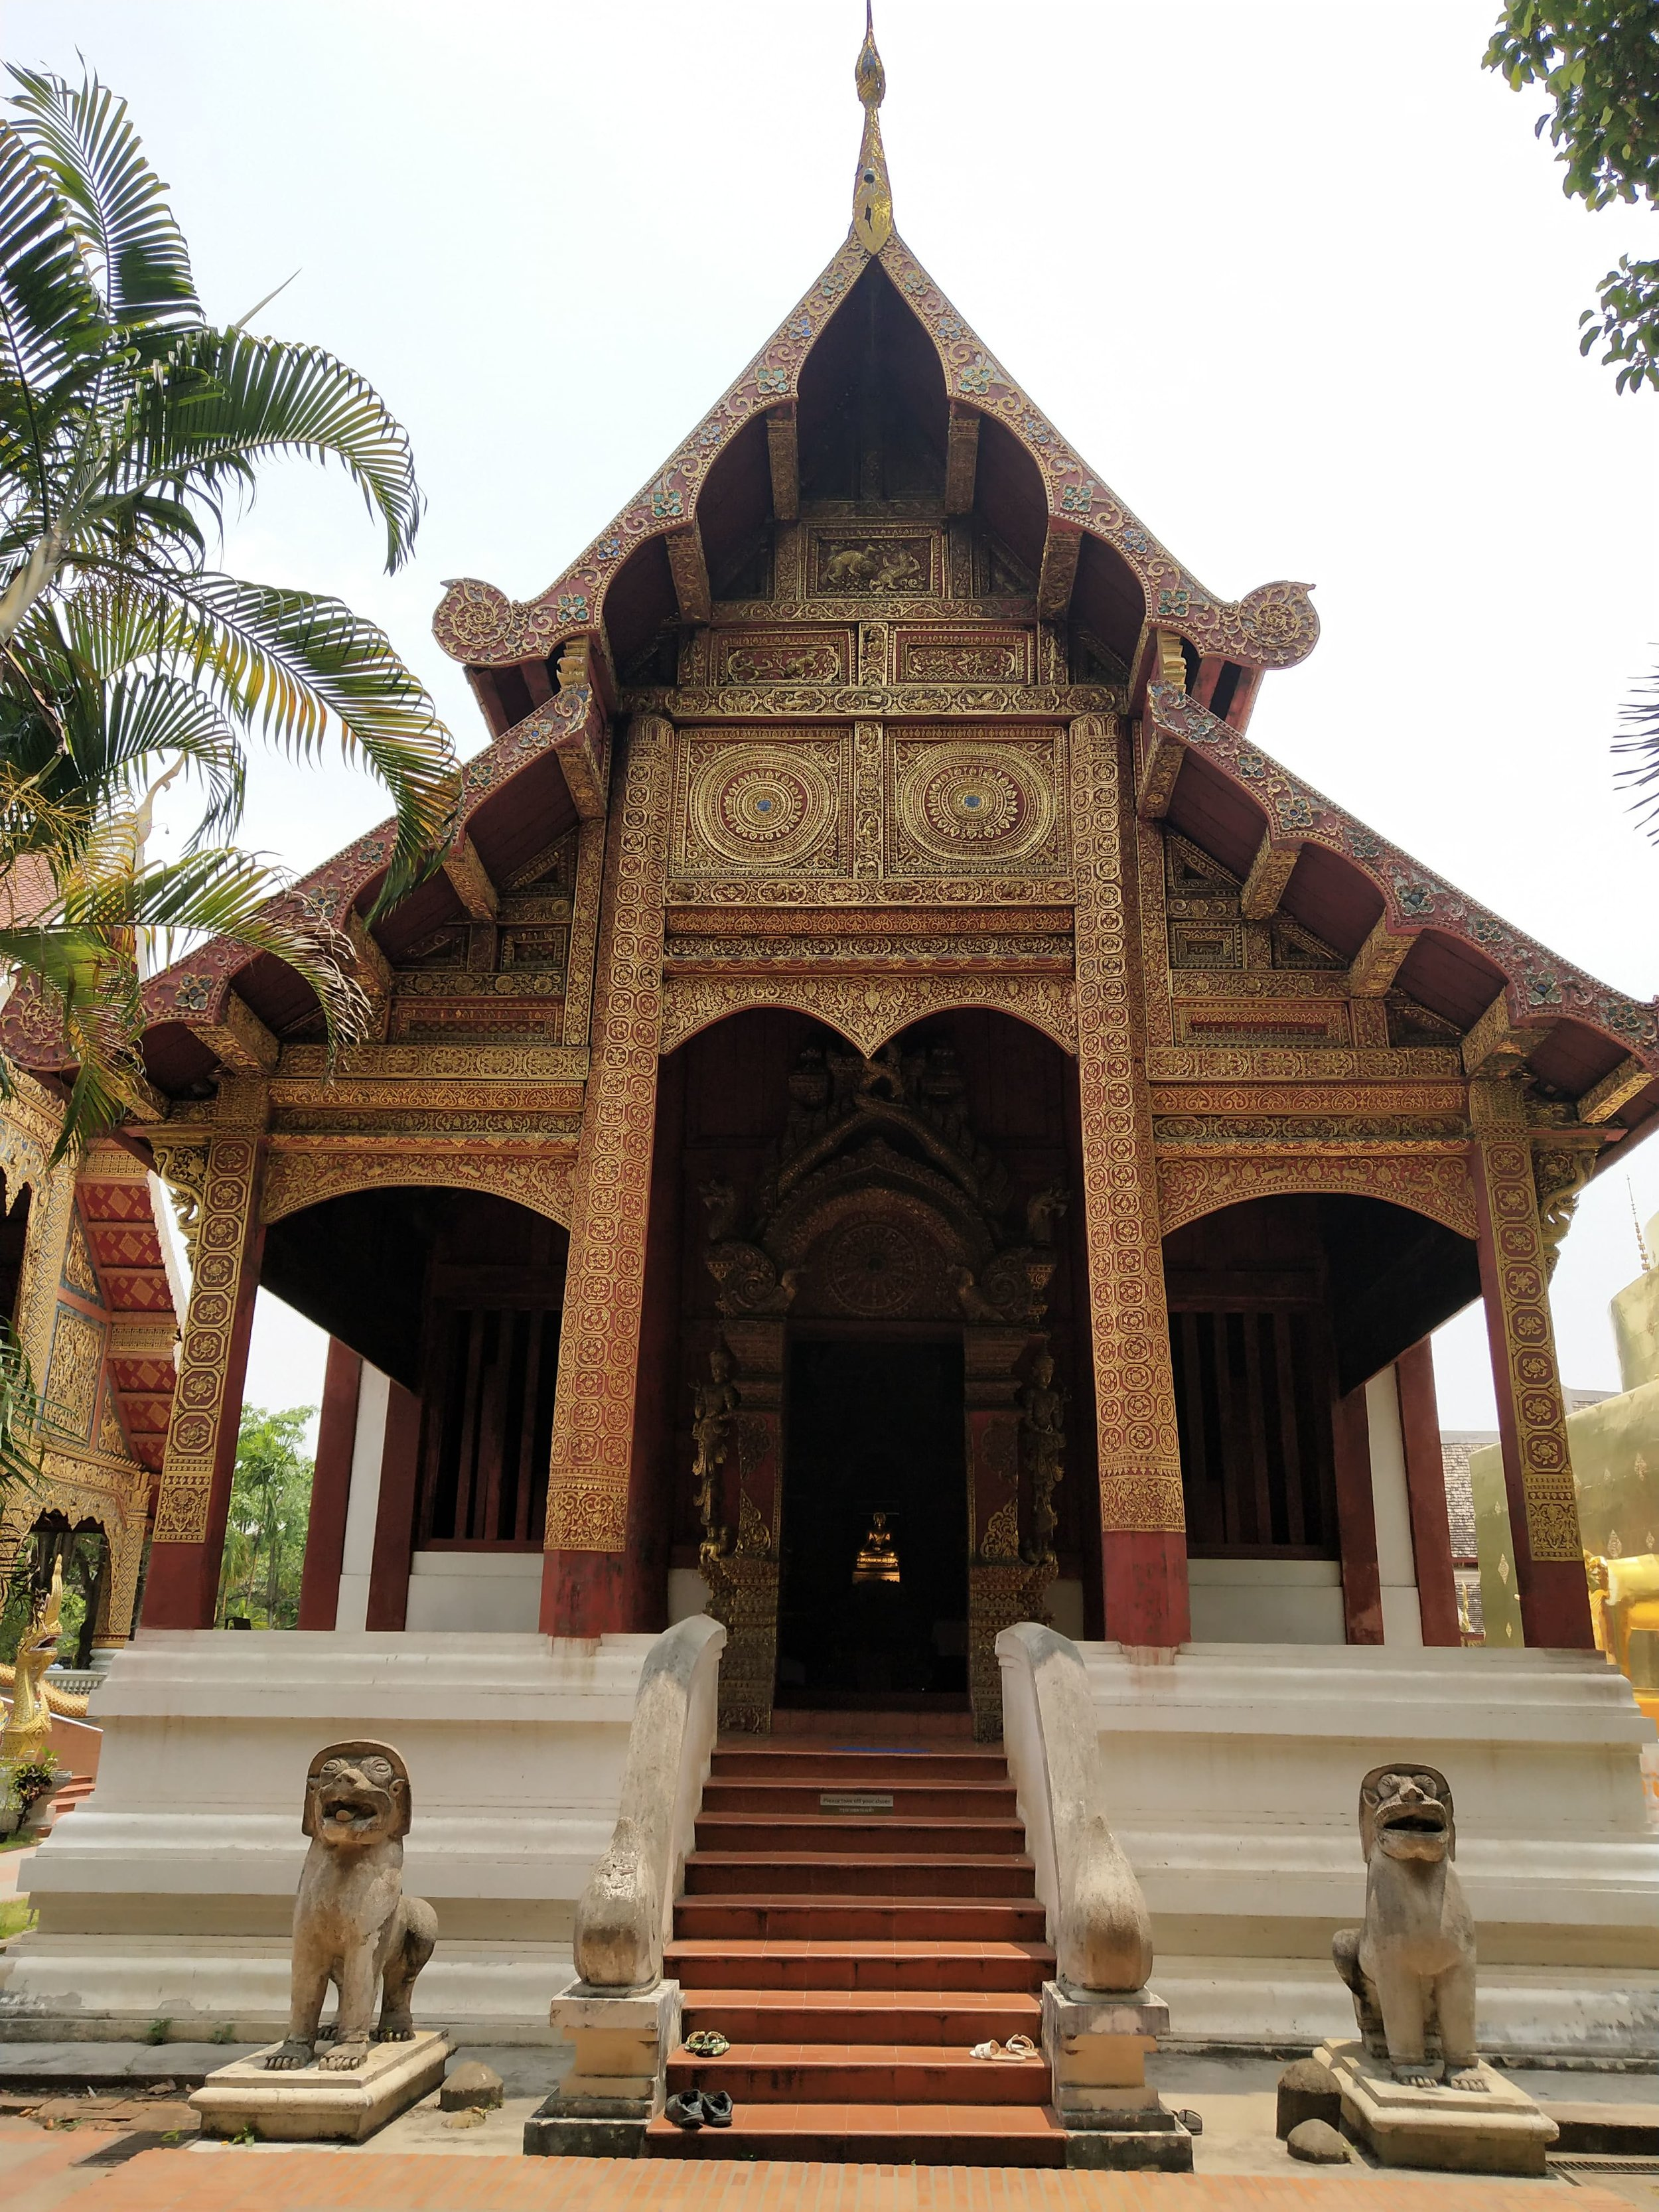 Chiang Mai Old Town travel guide